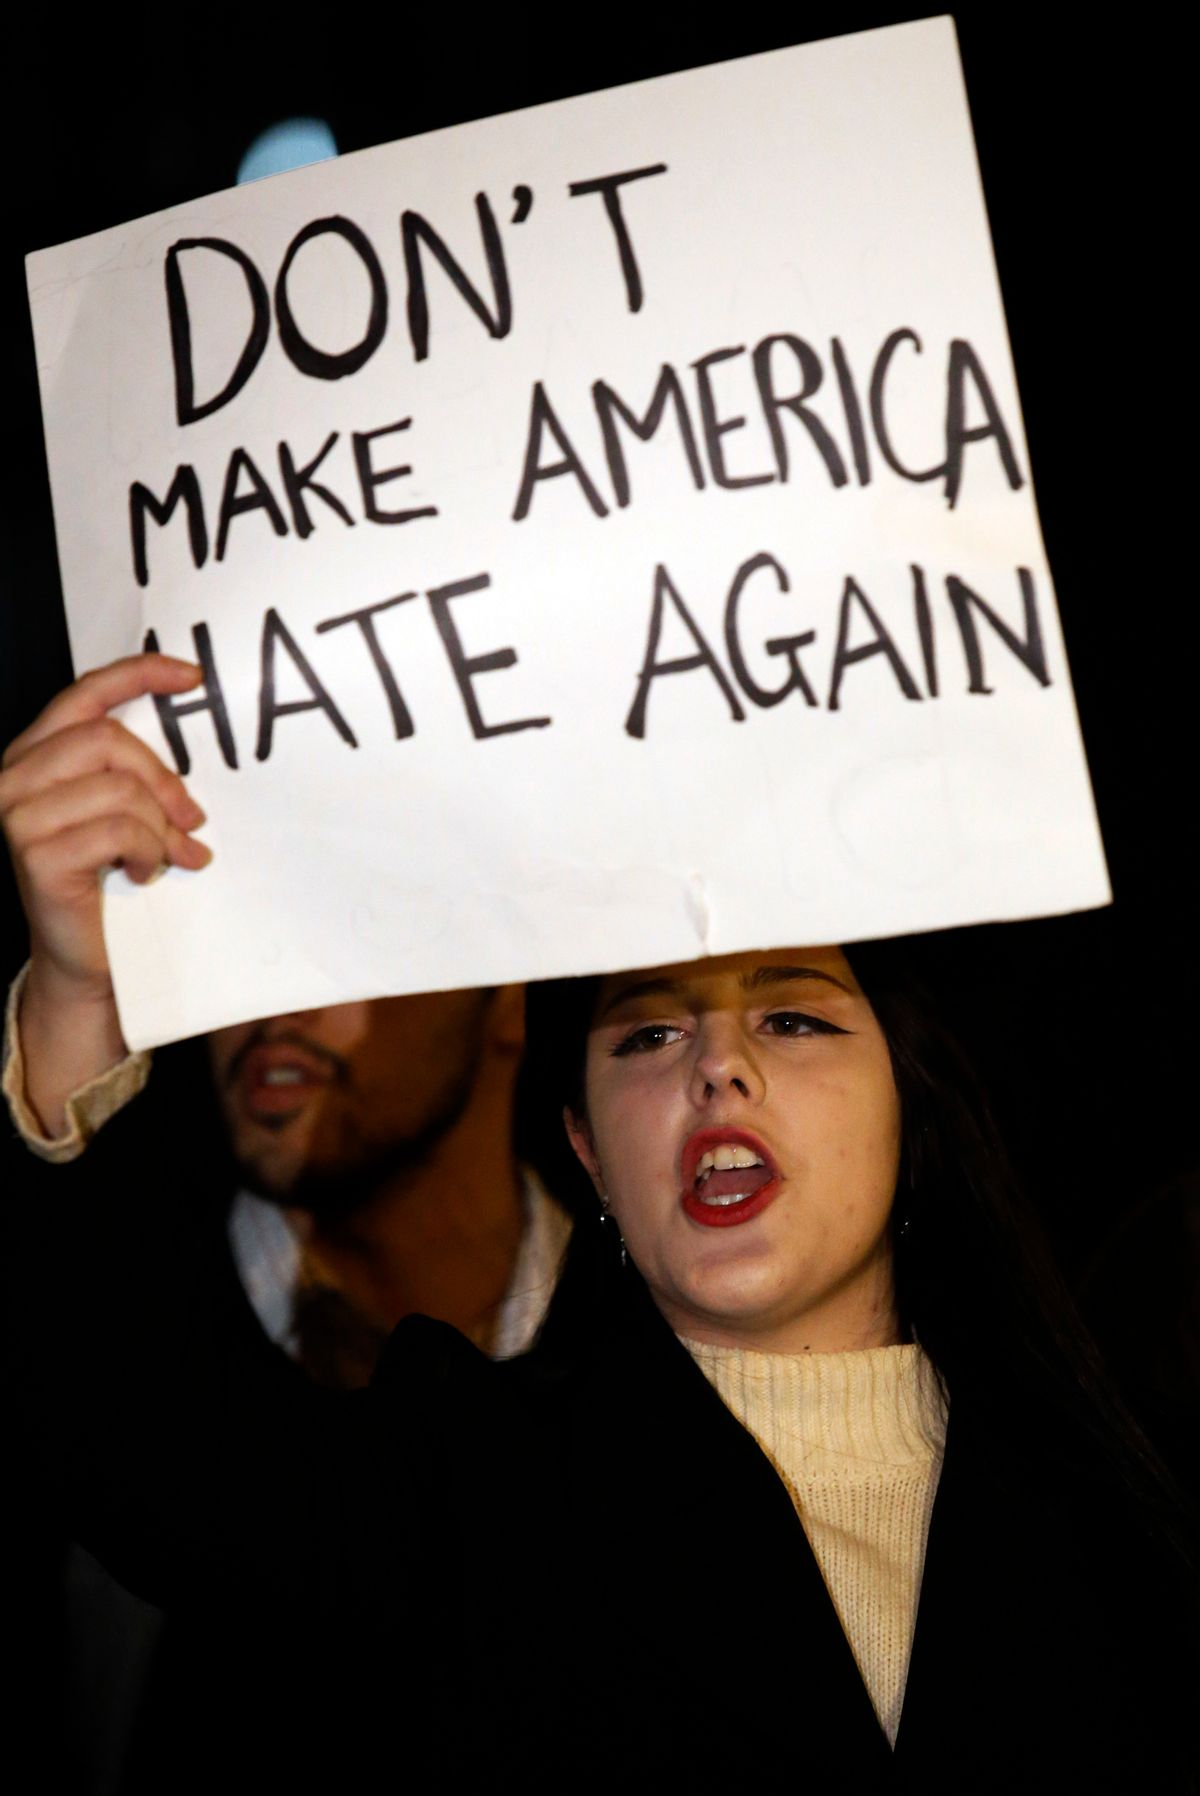 A protester holds a sign during a protest against the election of President-elect Donald Trump in Chicago, Thursday, Nov. 10, 2016. Two days after Trump's election as president, the divisions he exposed only showed signs of widening as many thousands of protesters flooded streets across the country to condemn him. (AP Photo/Nam Y. Huh) (AP)